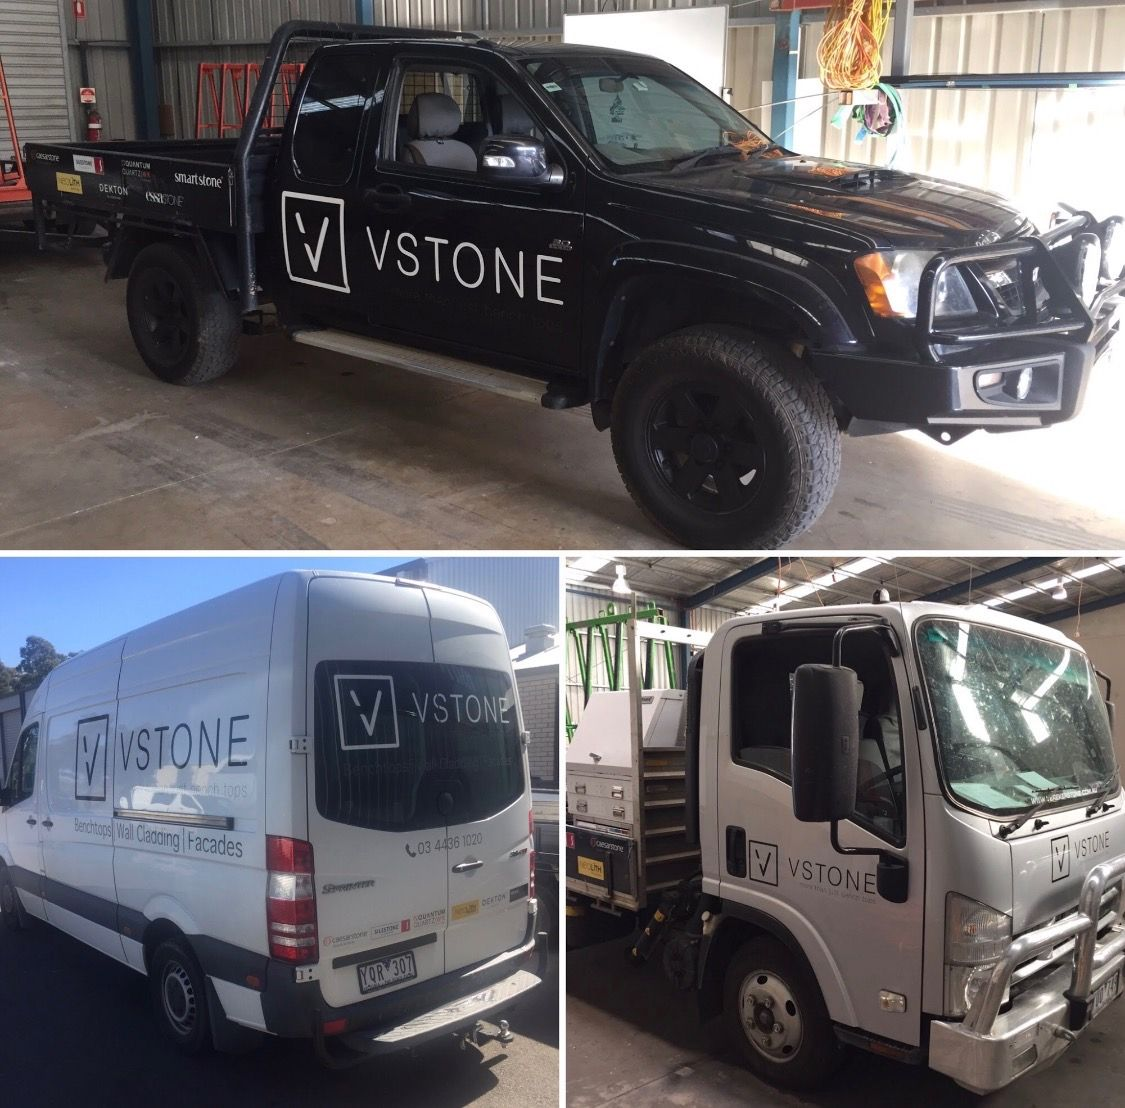 Vehicle Signage, Vinyl Lettering, Signwriting Bendigo Victoria, Mint Signs